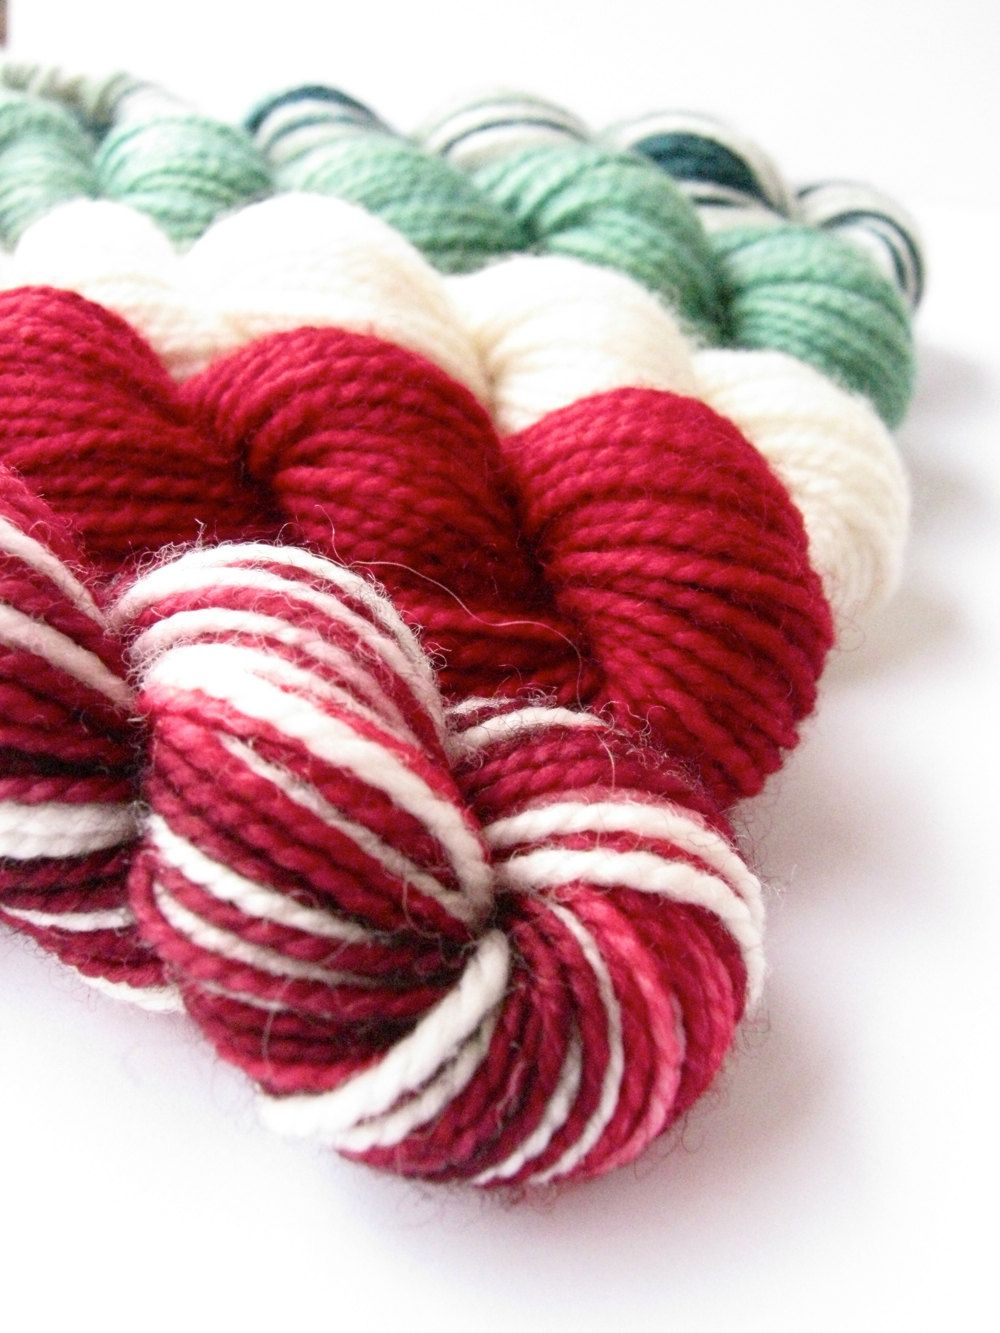 Hand Dyed Yarn - Superwash Merino, Classic Sock Yarn, Holiday Mini Skein Stocking Stuffer - Preorder.. $15.00, via Etsy.